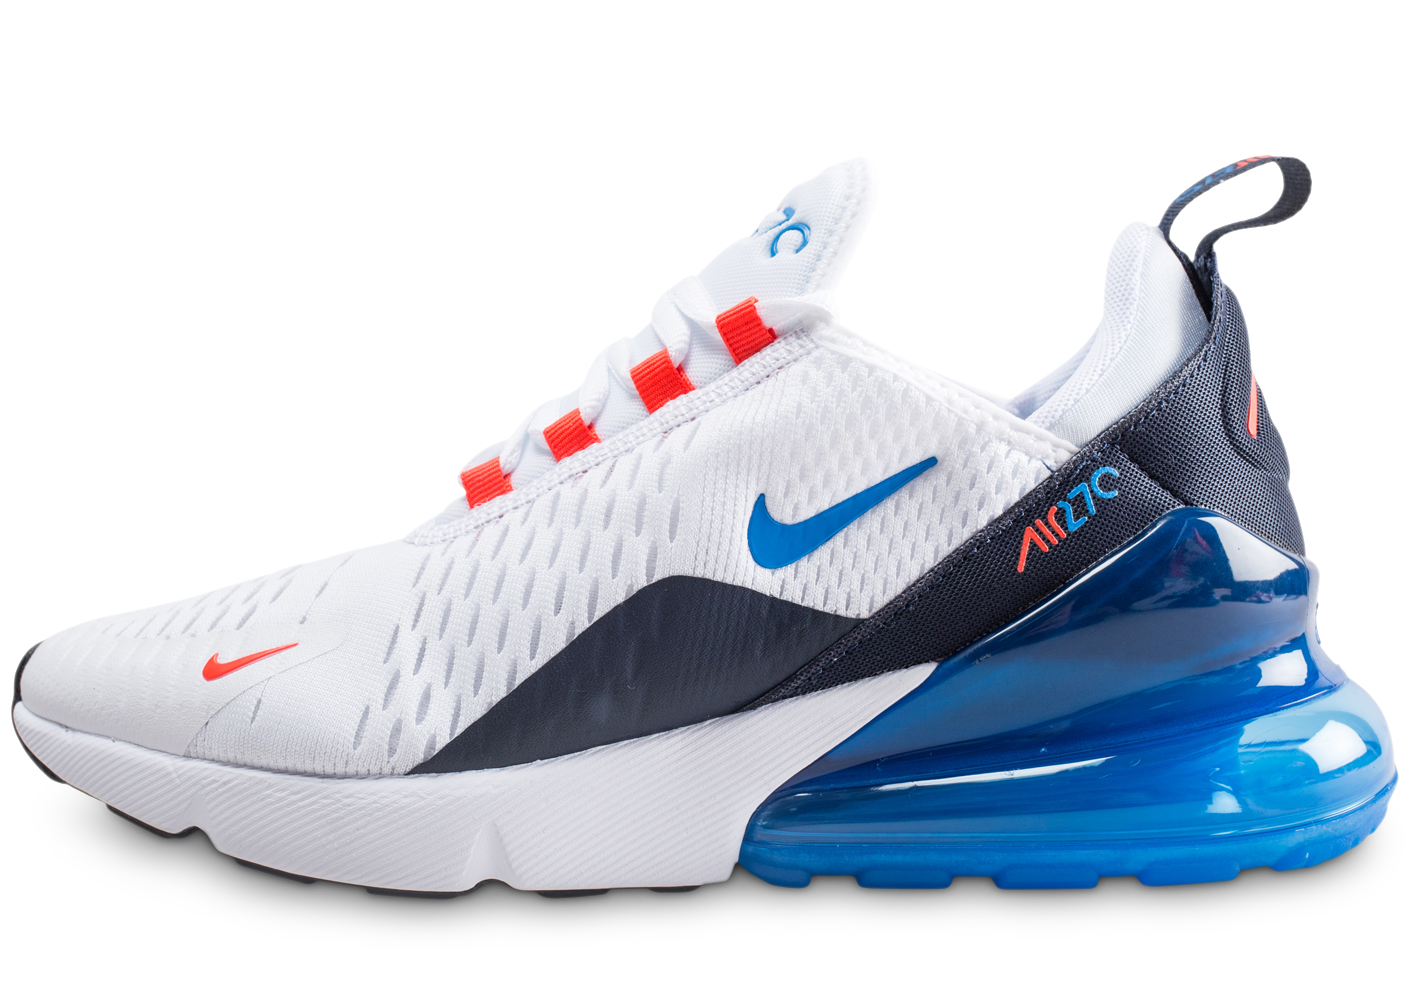 reputable site ba0cc 12d41 Nike enfant air max 270 blanche et bleue junior.